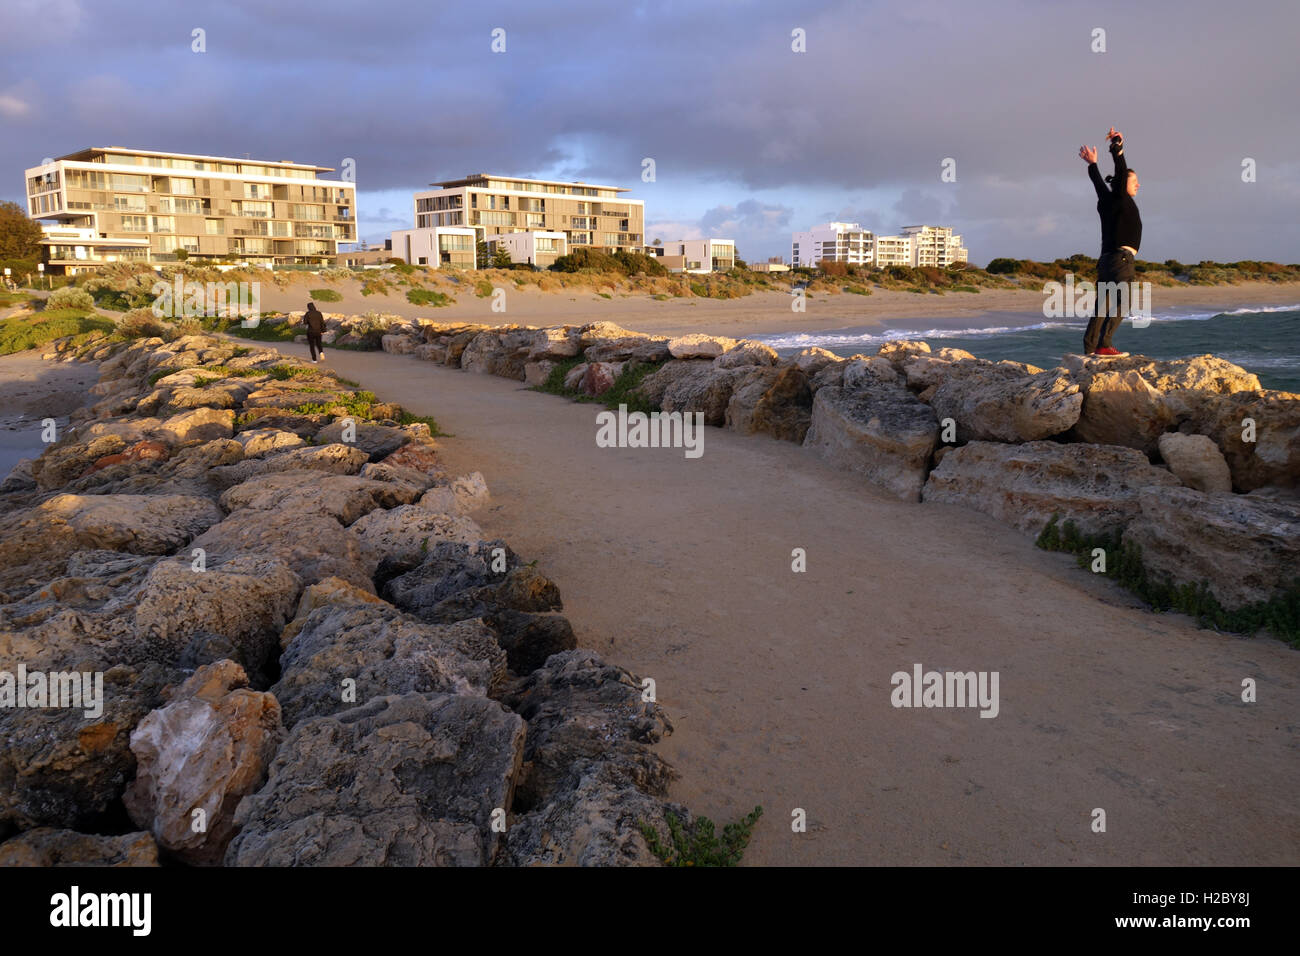 Person enjoying stormy evening seas, South Beach, South Fremantle, Perth, Western Australia. No MR or PR - Stock Image